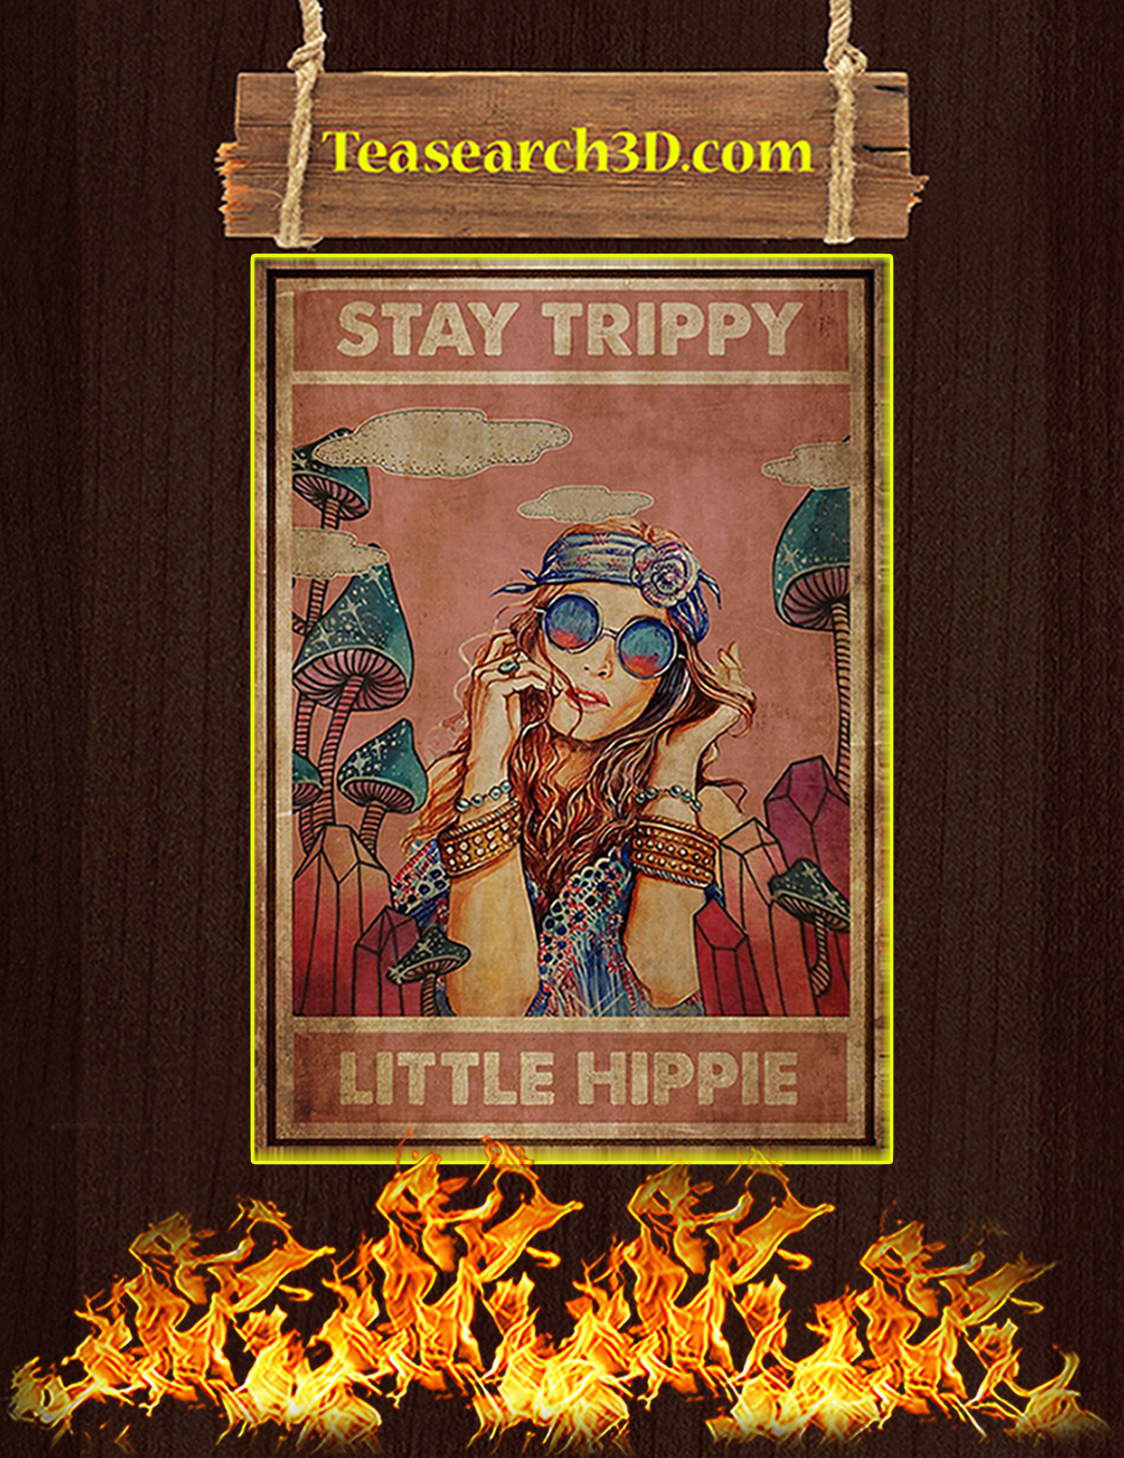 Stay trippy little hippie poster A3